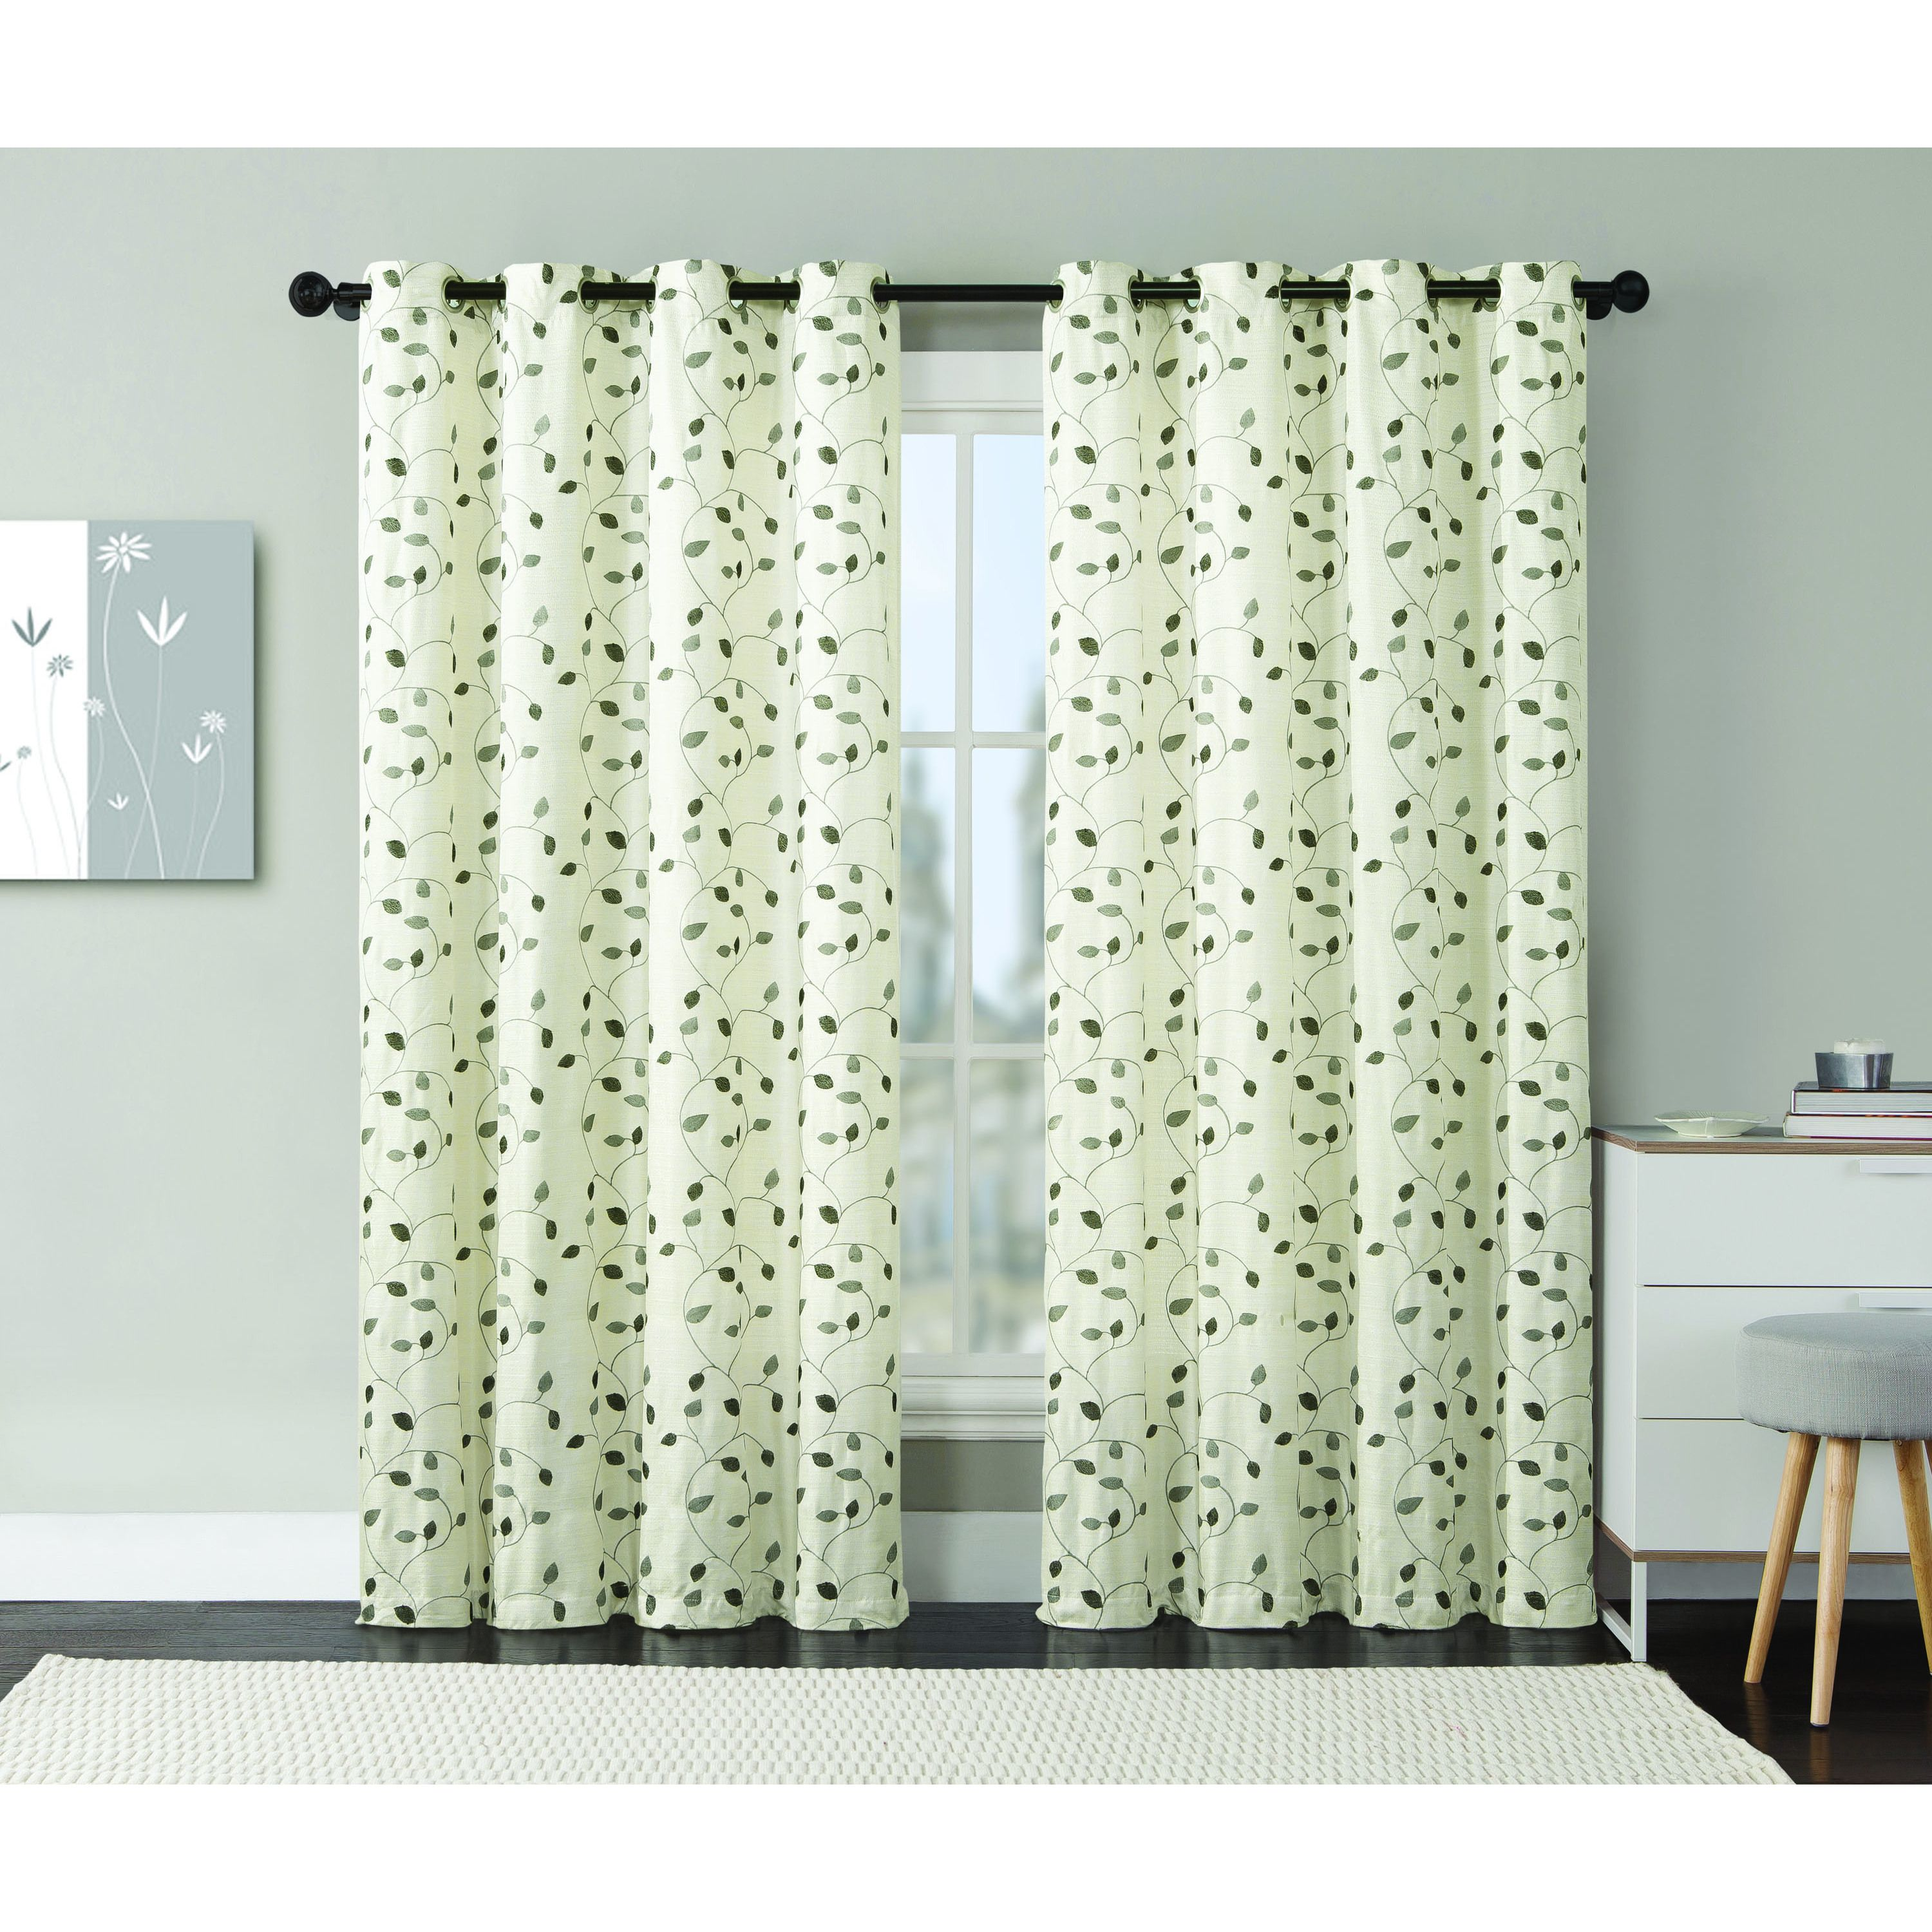 Vcny jasmine embroidered grommettop curtain panel blue size